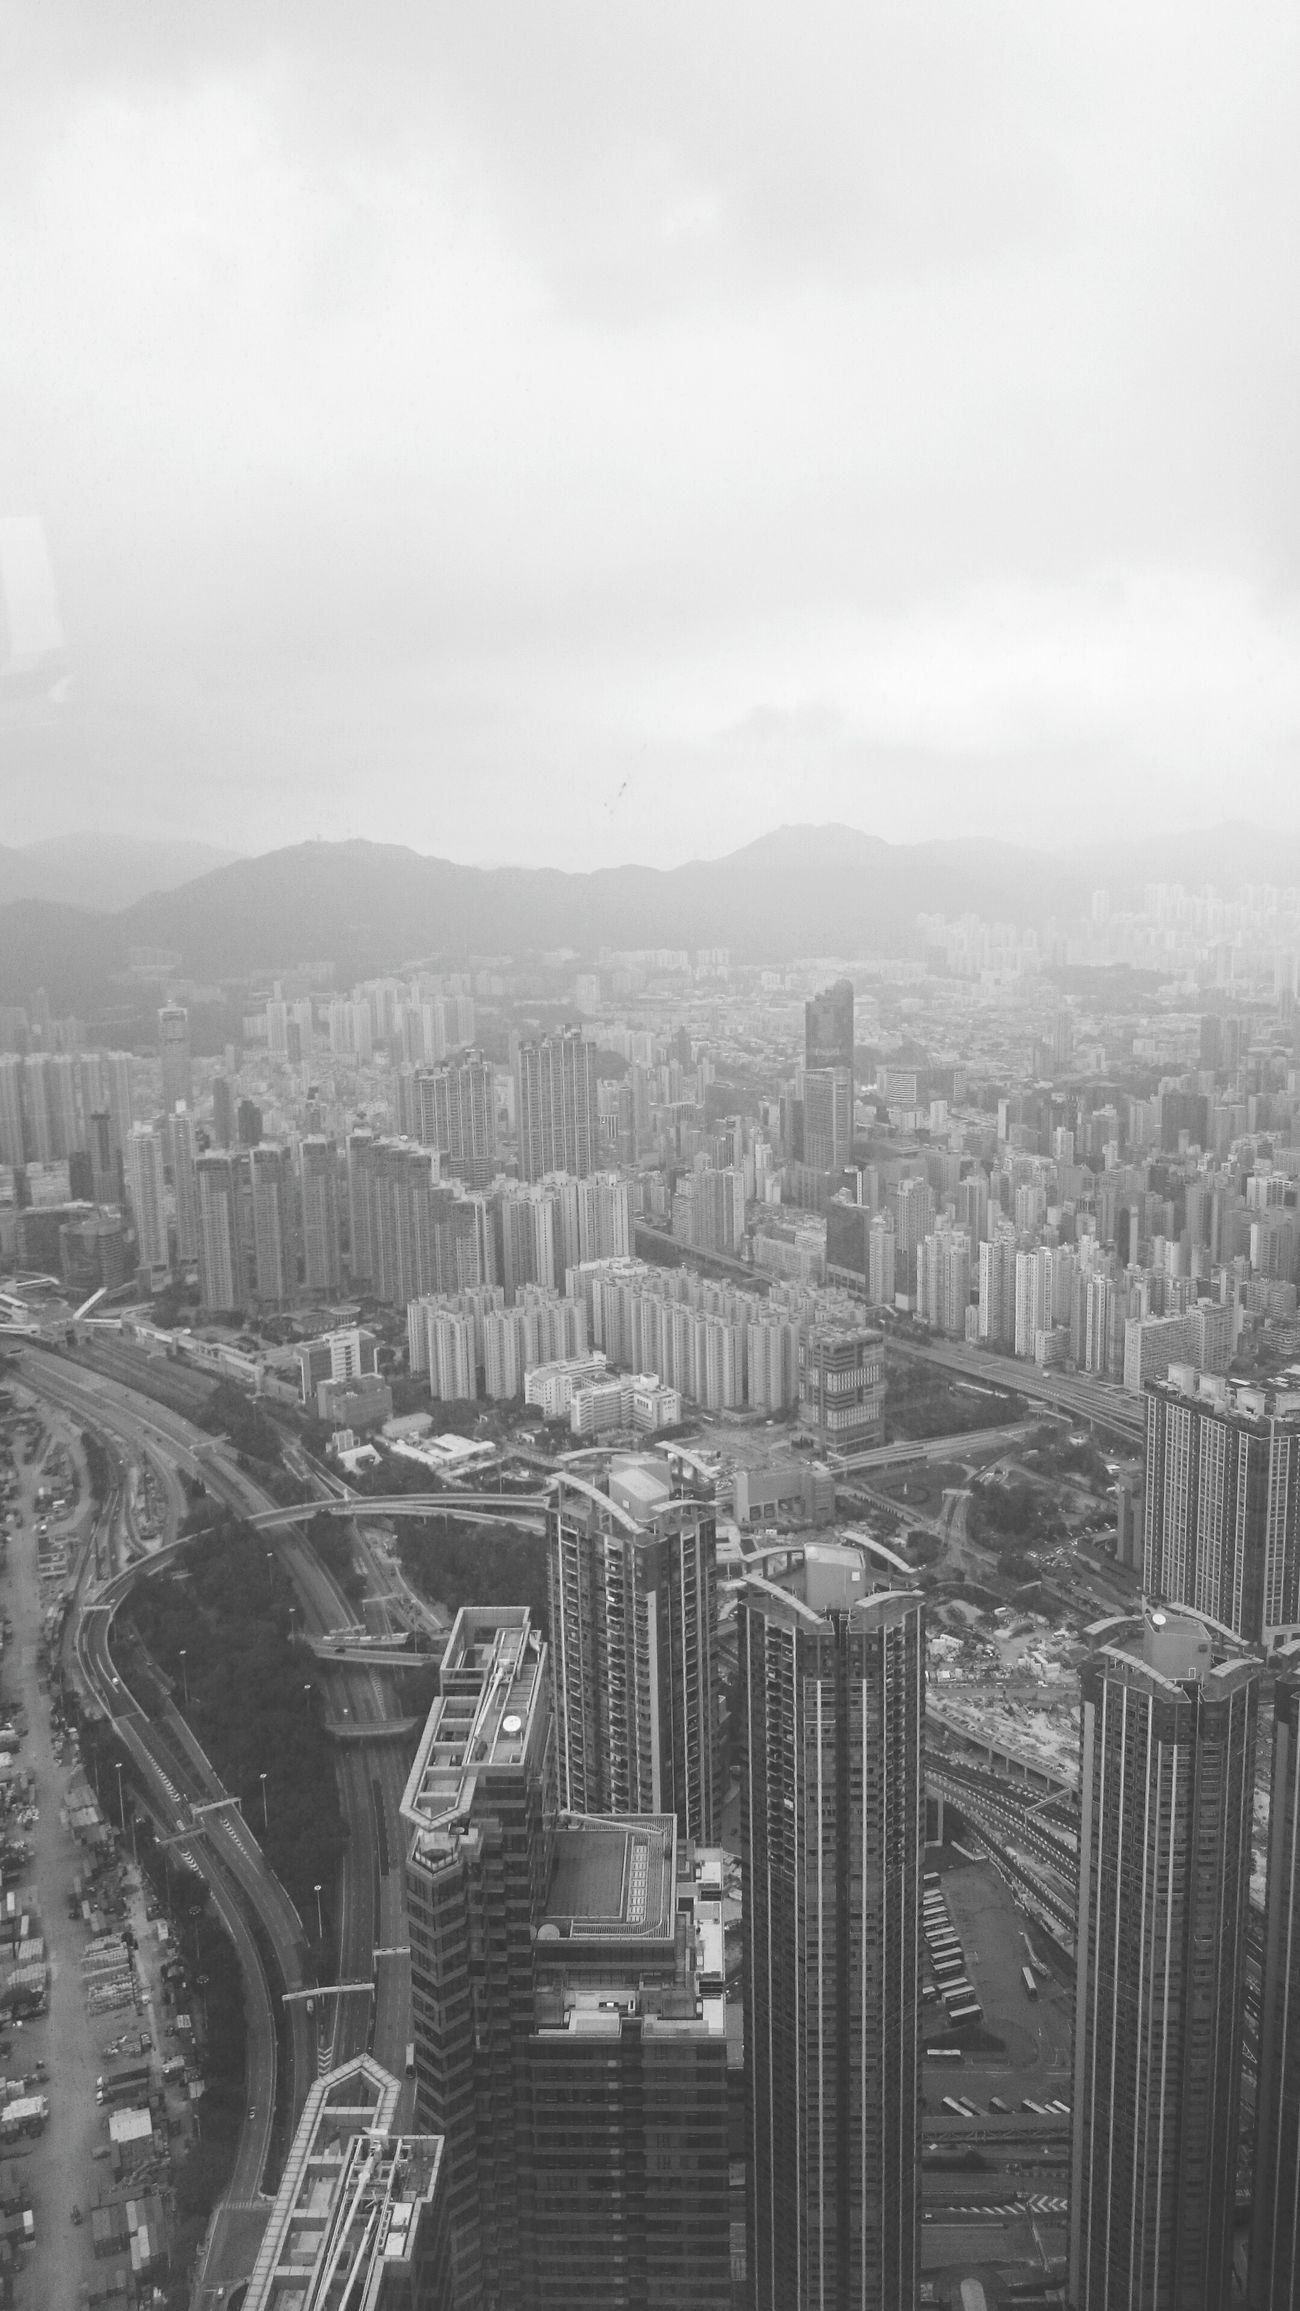 Cityscape Skyscraper City Urban Skyline Travel Destinations Architecture No People Architecture Sky100hk Sky100 Hongkongstreet Hongkongcity Hong Kong City Hongkongcollection Hongkonglife Hongkongphotography HongKong Cityscape B&w Street Photography Black And White Hongkong Black&white Hongkongskyline Blackandwhite Blackandwhite Photography